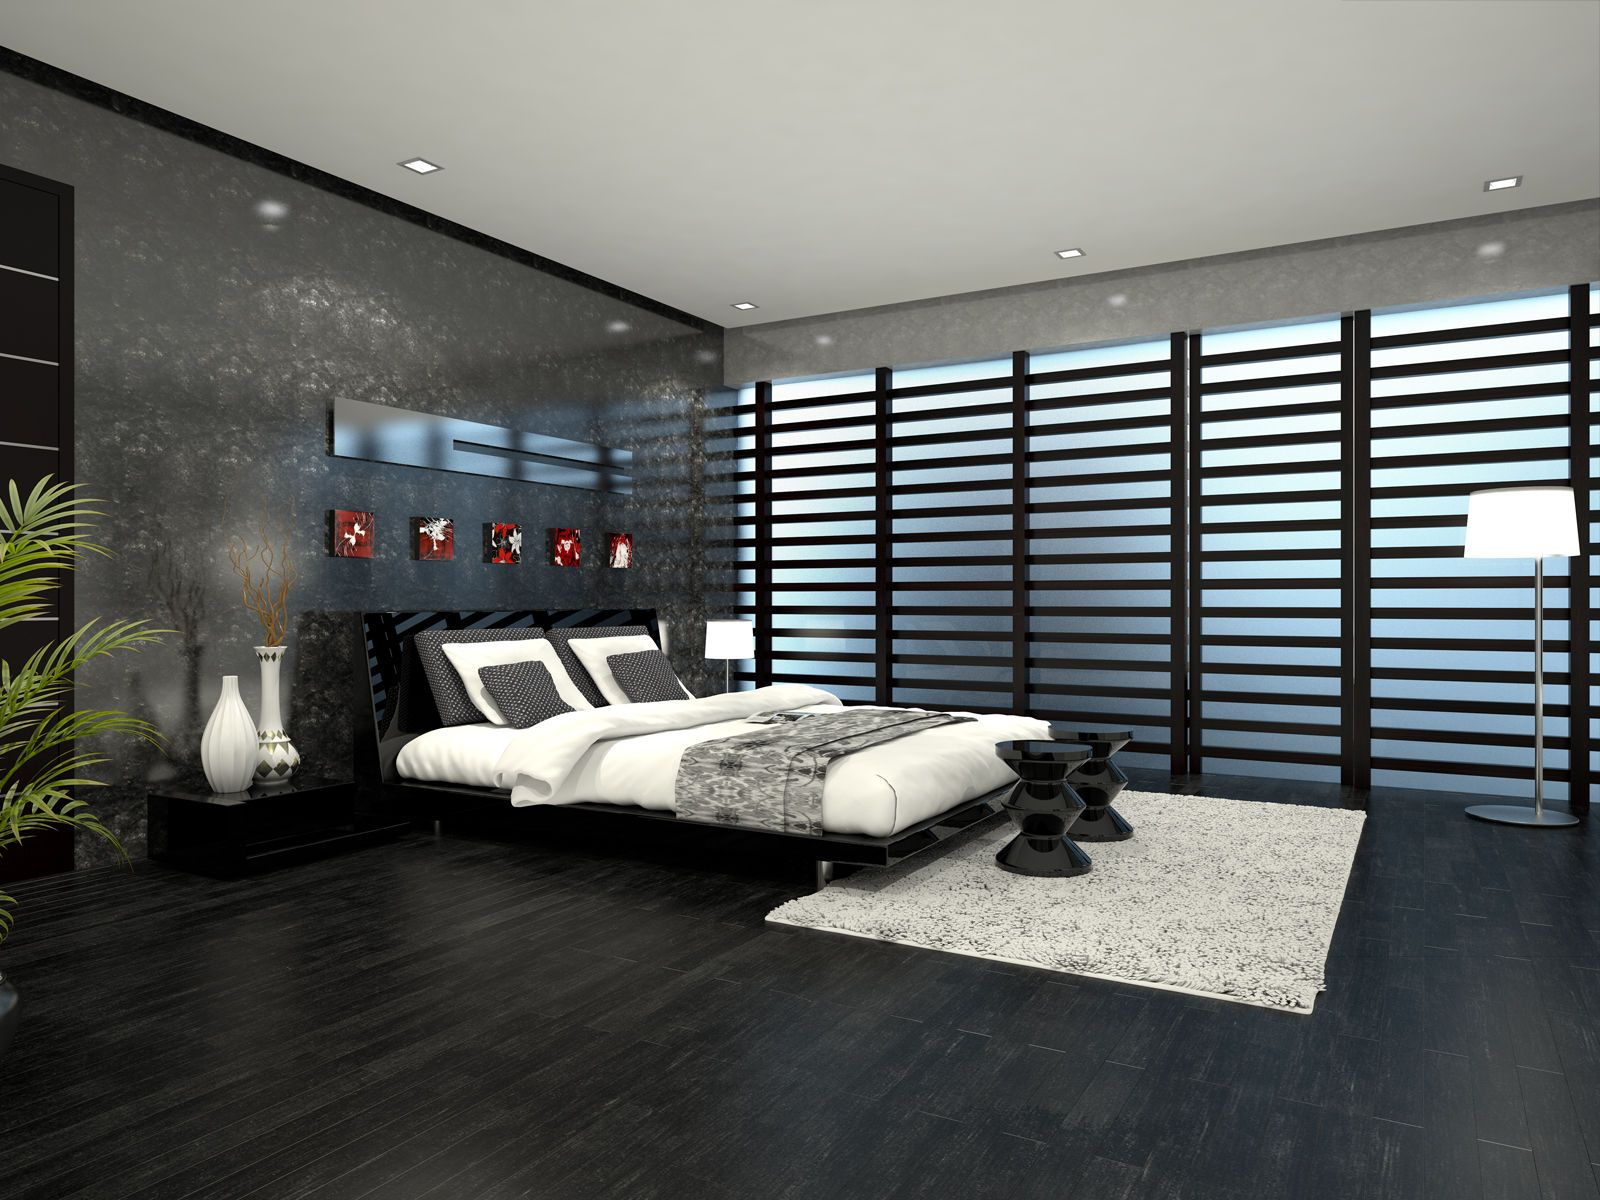 3d model interior design free download photo 3d interior for Model bedroom interior design